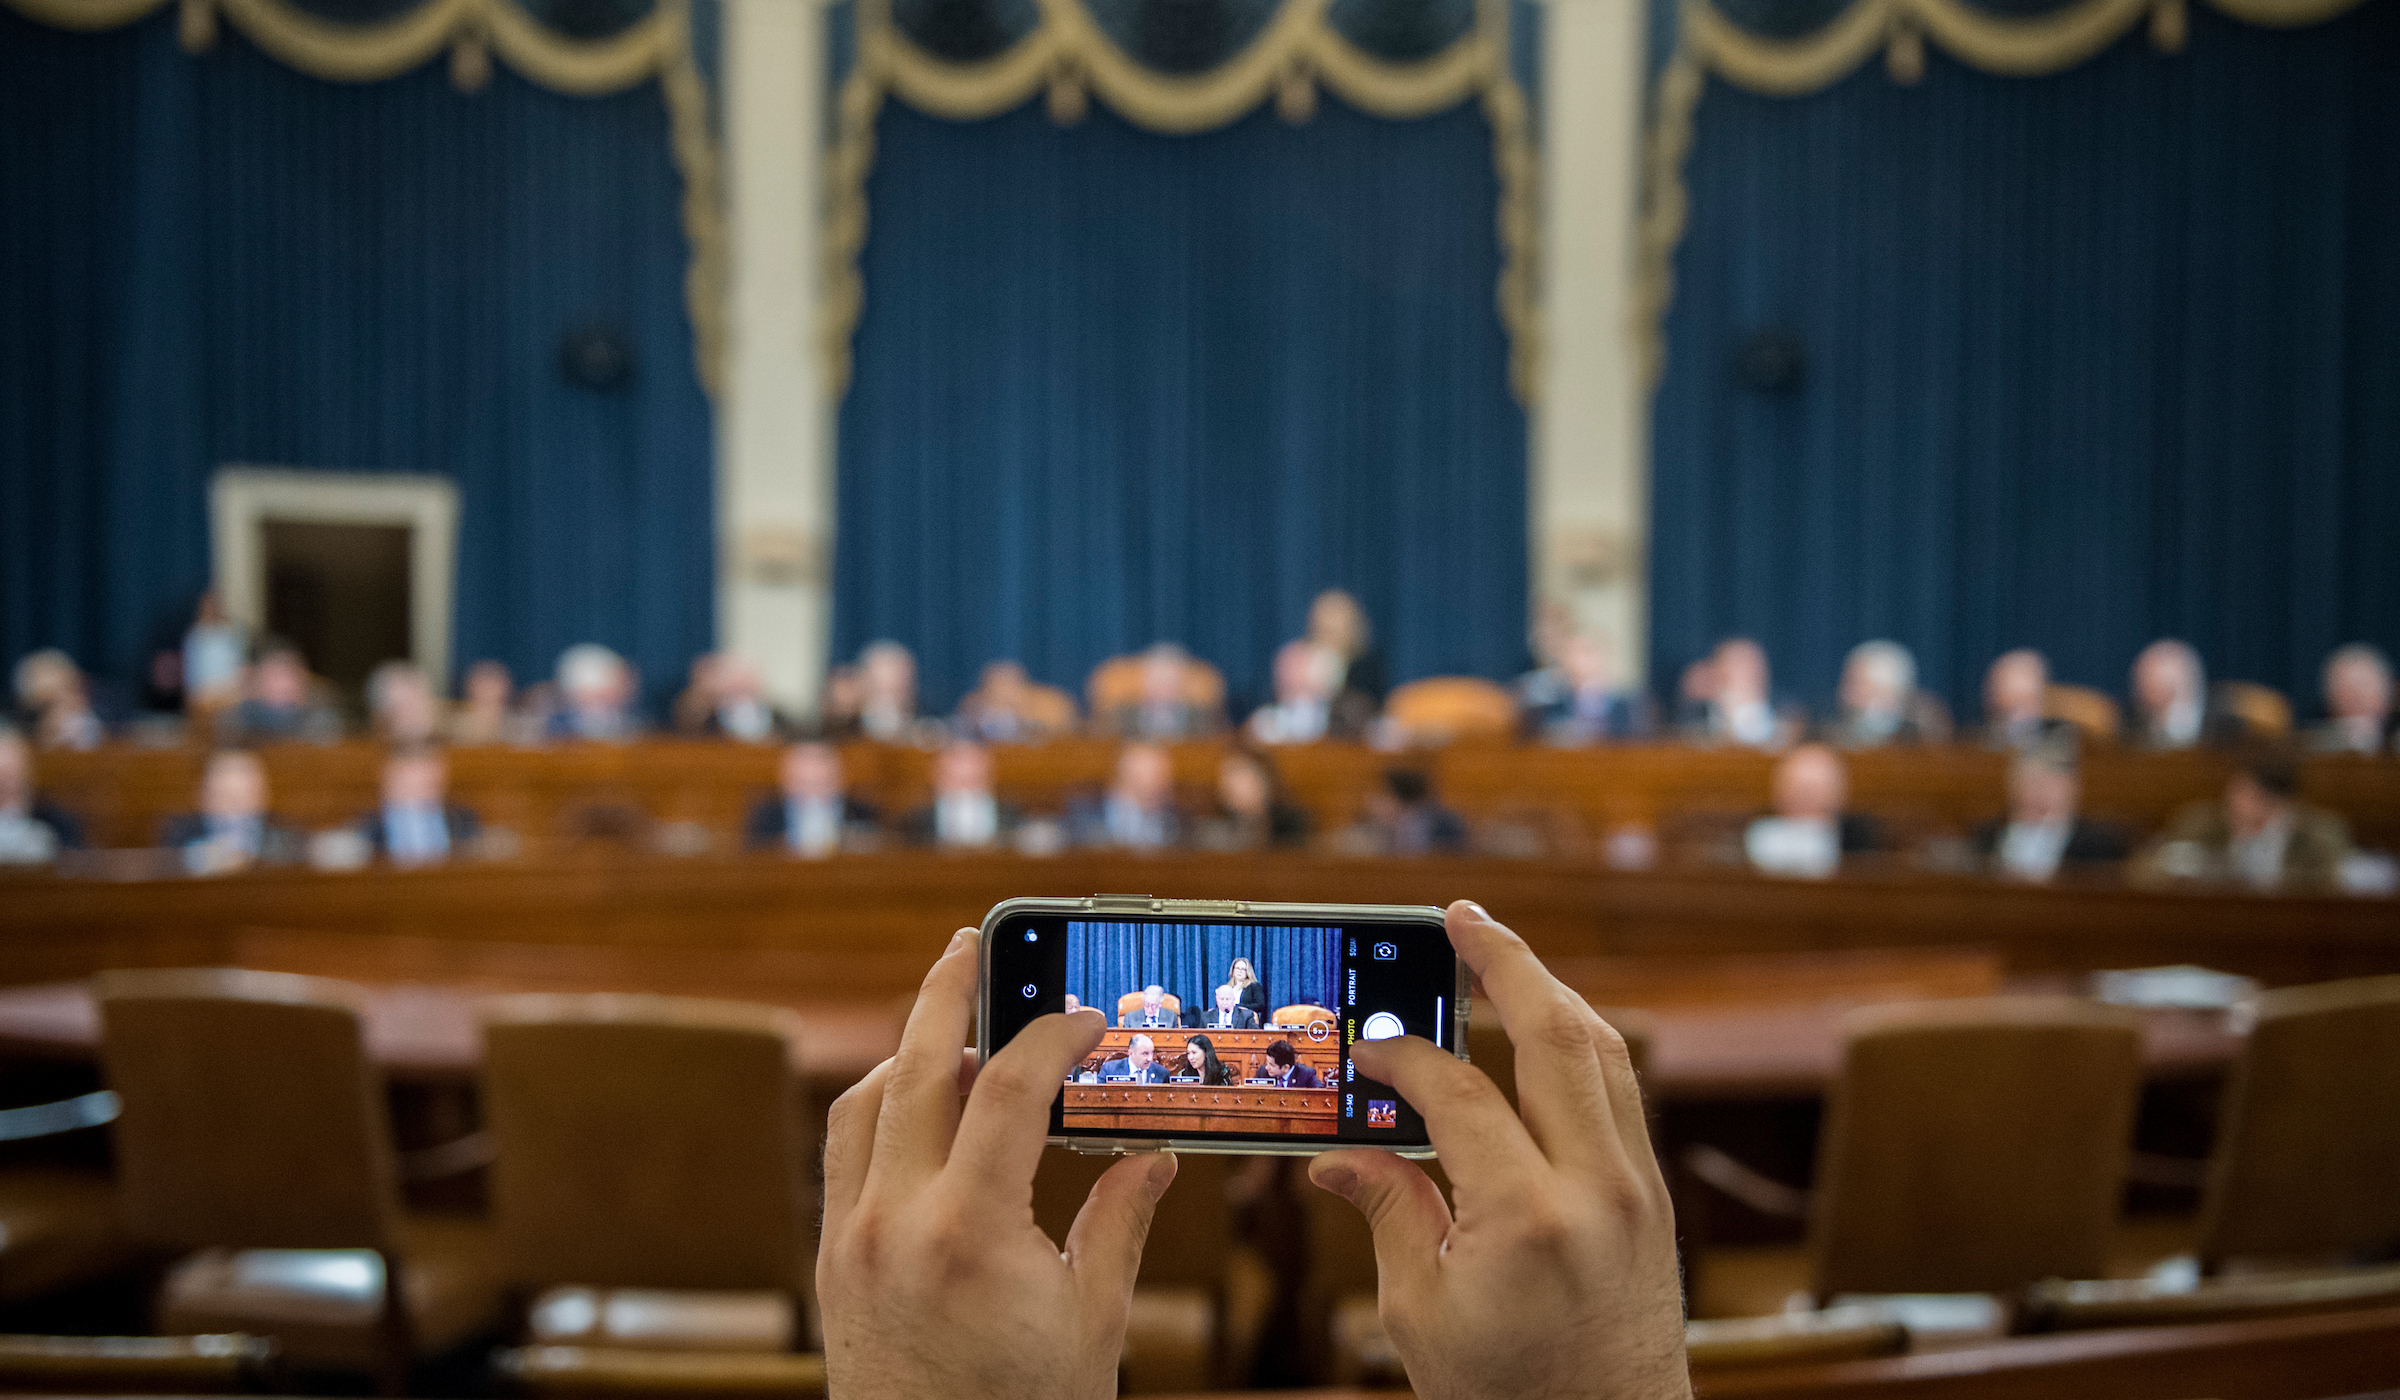 A House staffer takes photos as the House Ways and Means Committee holds its organizational meeting for the 166th Congress on Thursday, Jan. 24, 2019. (Bill Clark/CQ Roll Call)